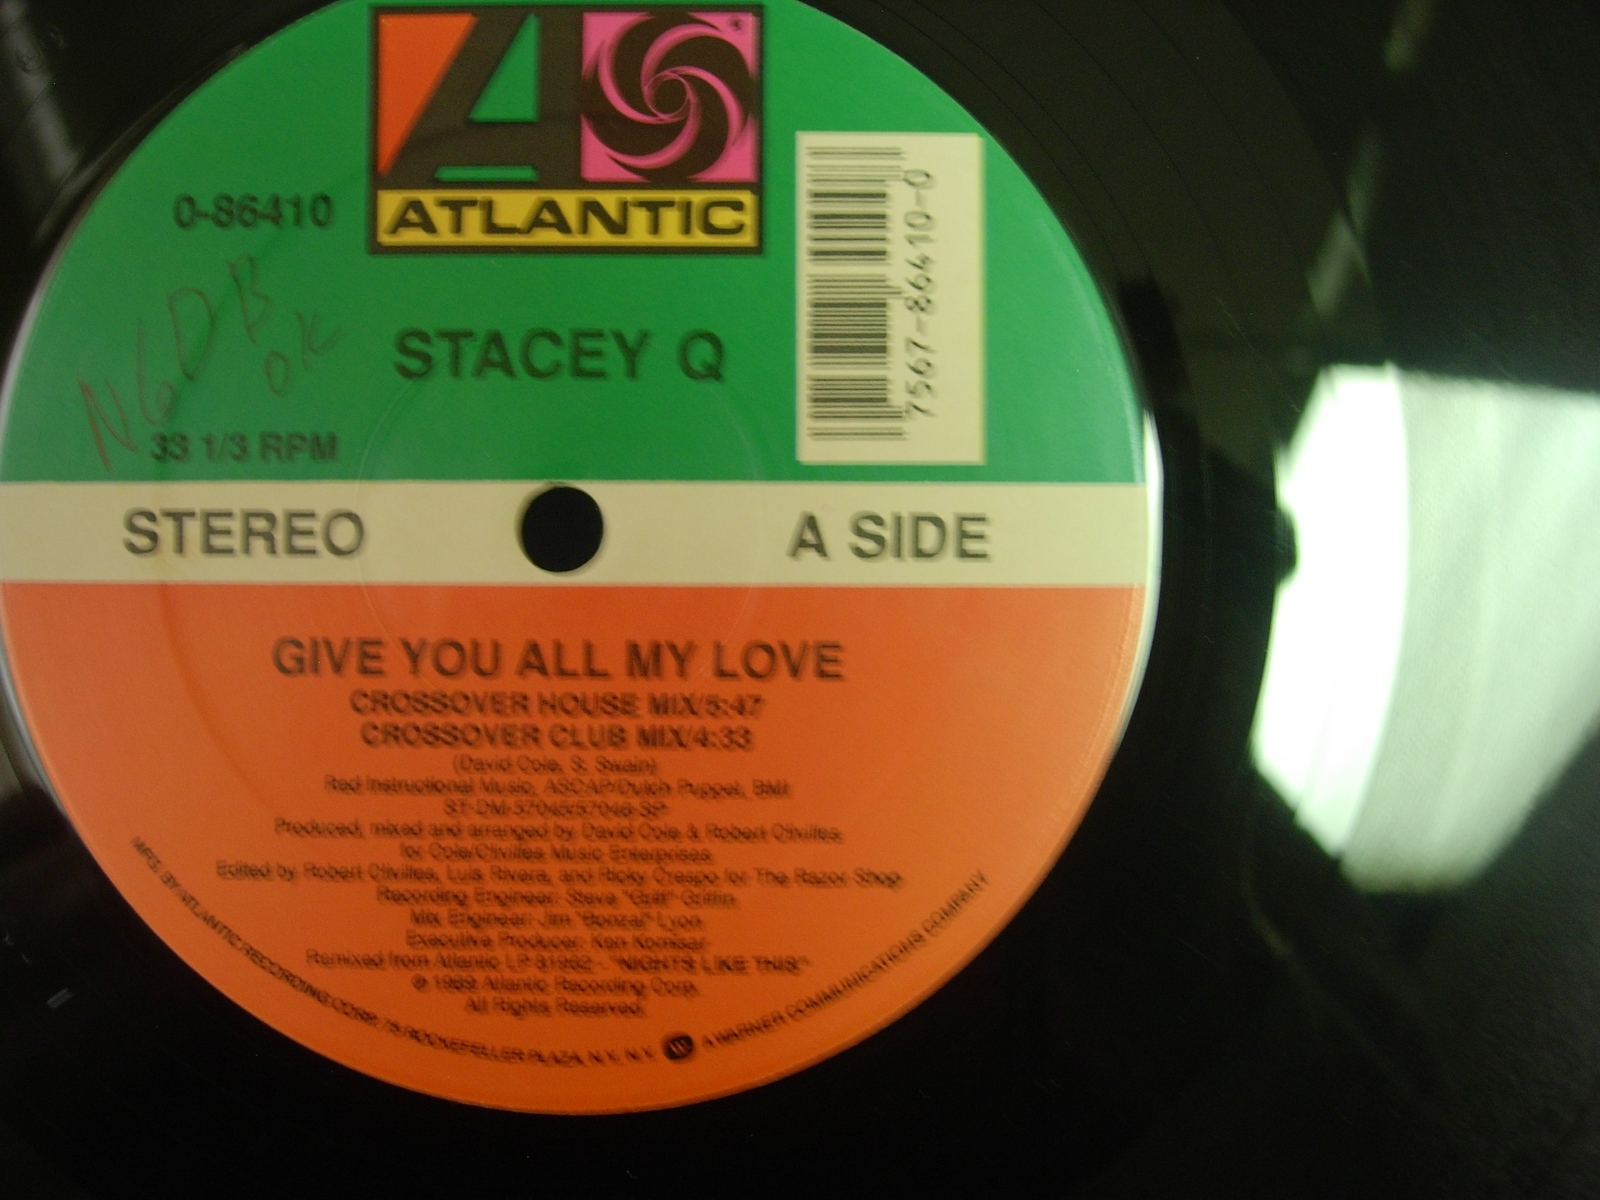 Stacey Q - Give You All My Love - Atlantic 0-86410 - 4 Mixes